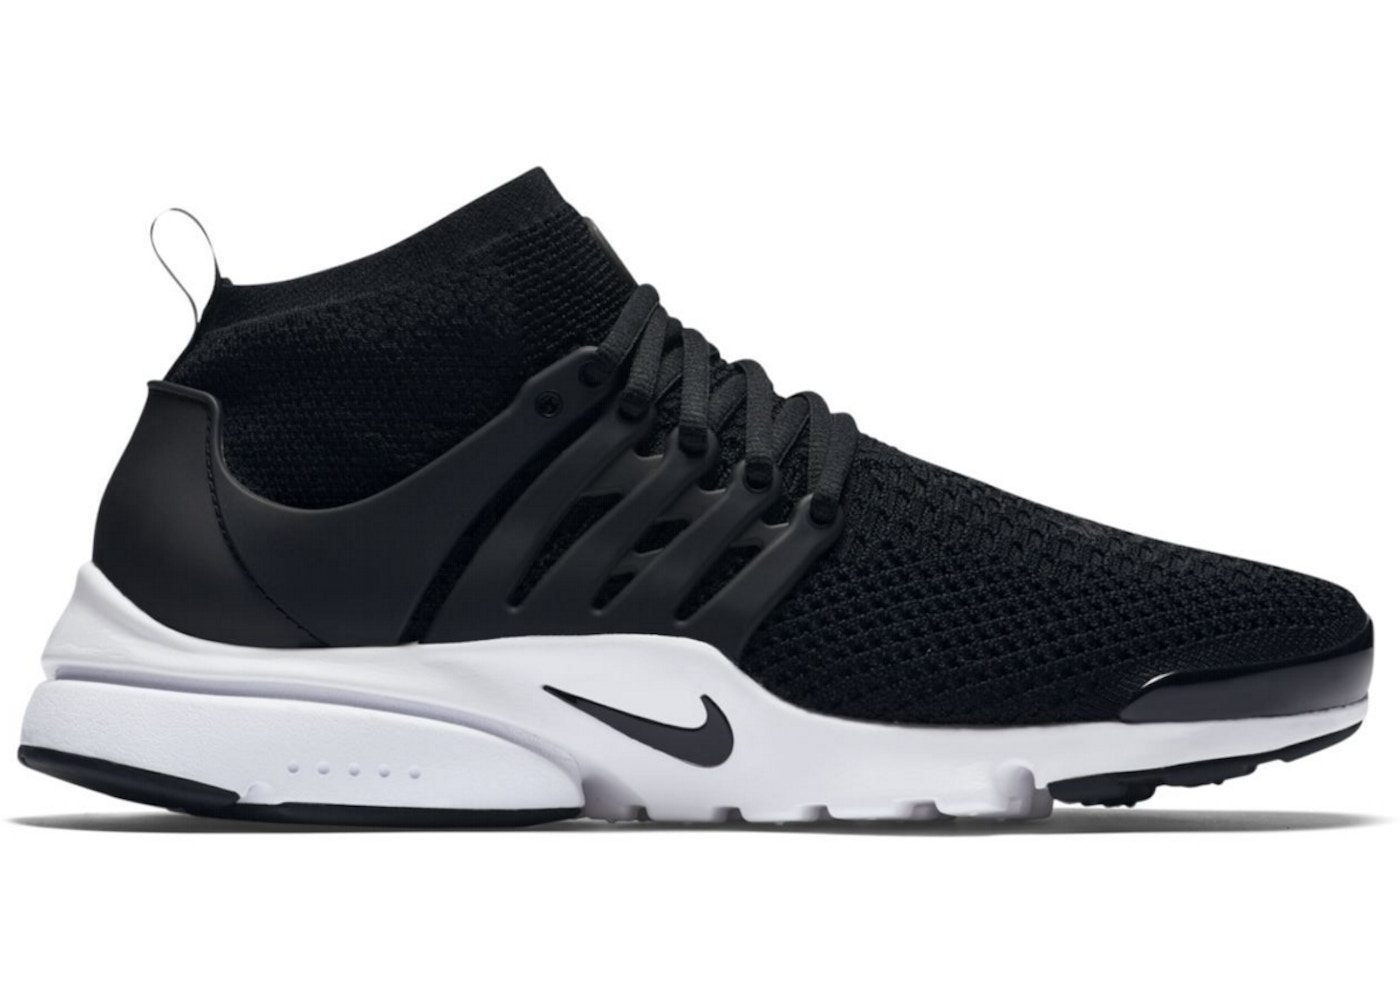 competitive price 2f37b 42540 Air Presto Flyknit Ultra Black White